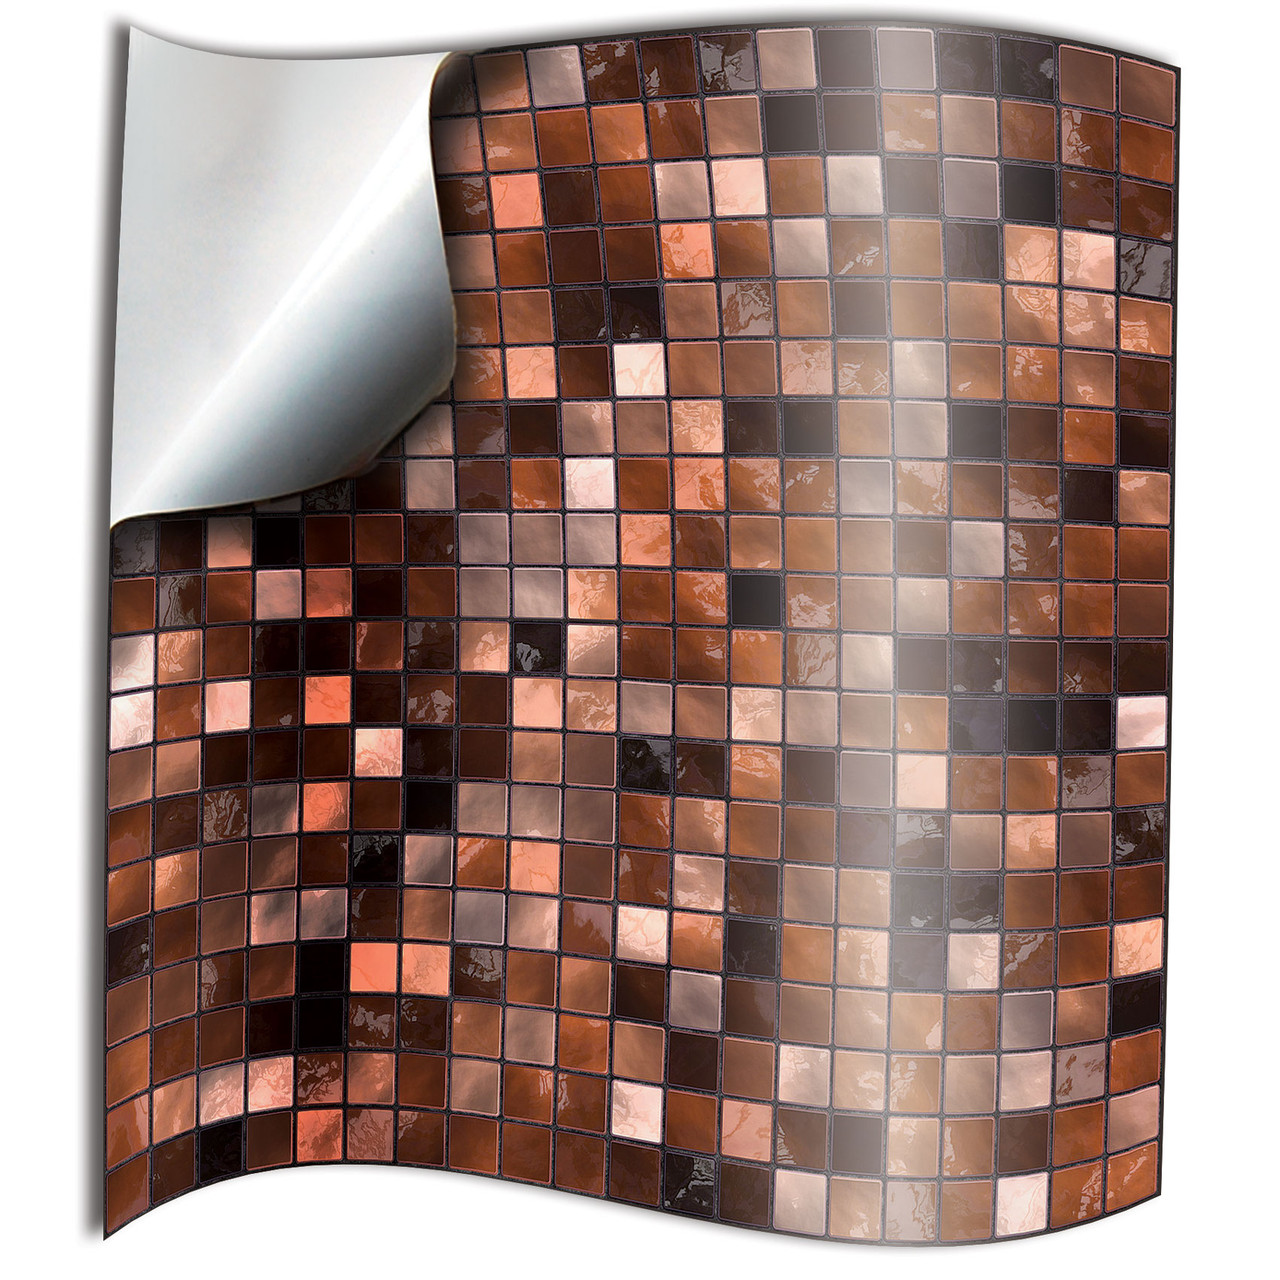 24 Copper Tile Stickers For Kitchen 15x15 Cm Bathroom Tile Transfers 6x6 Waterproof Tile Style Decals